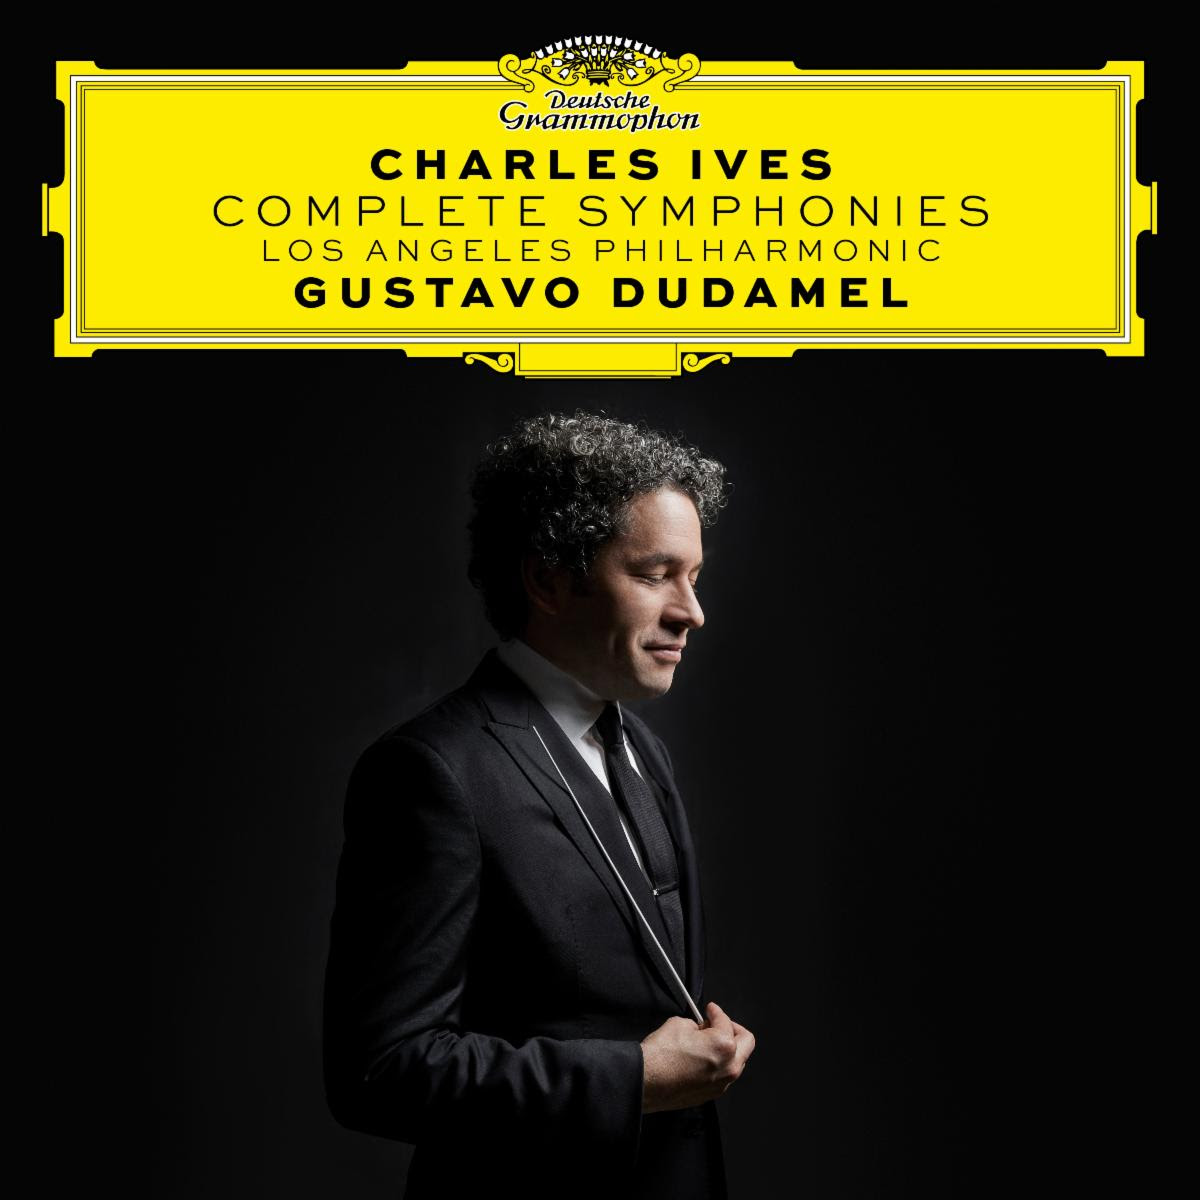 Los Angeles Philharmonic and its Music & Artistic Director Gustavo Dudamel.